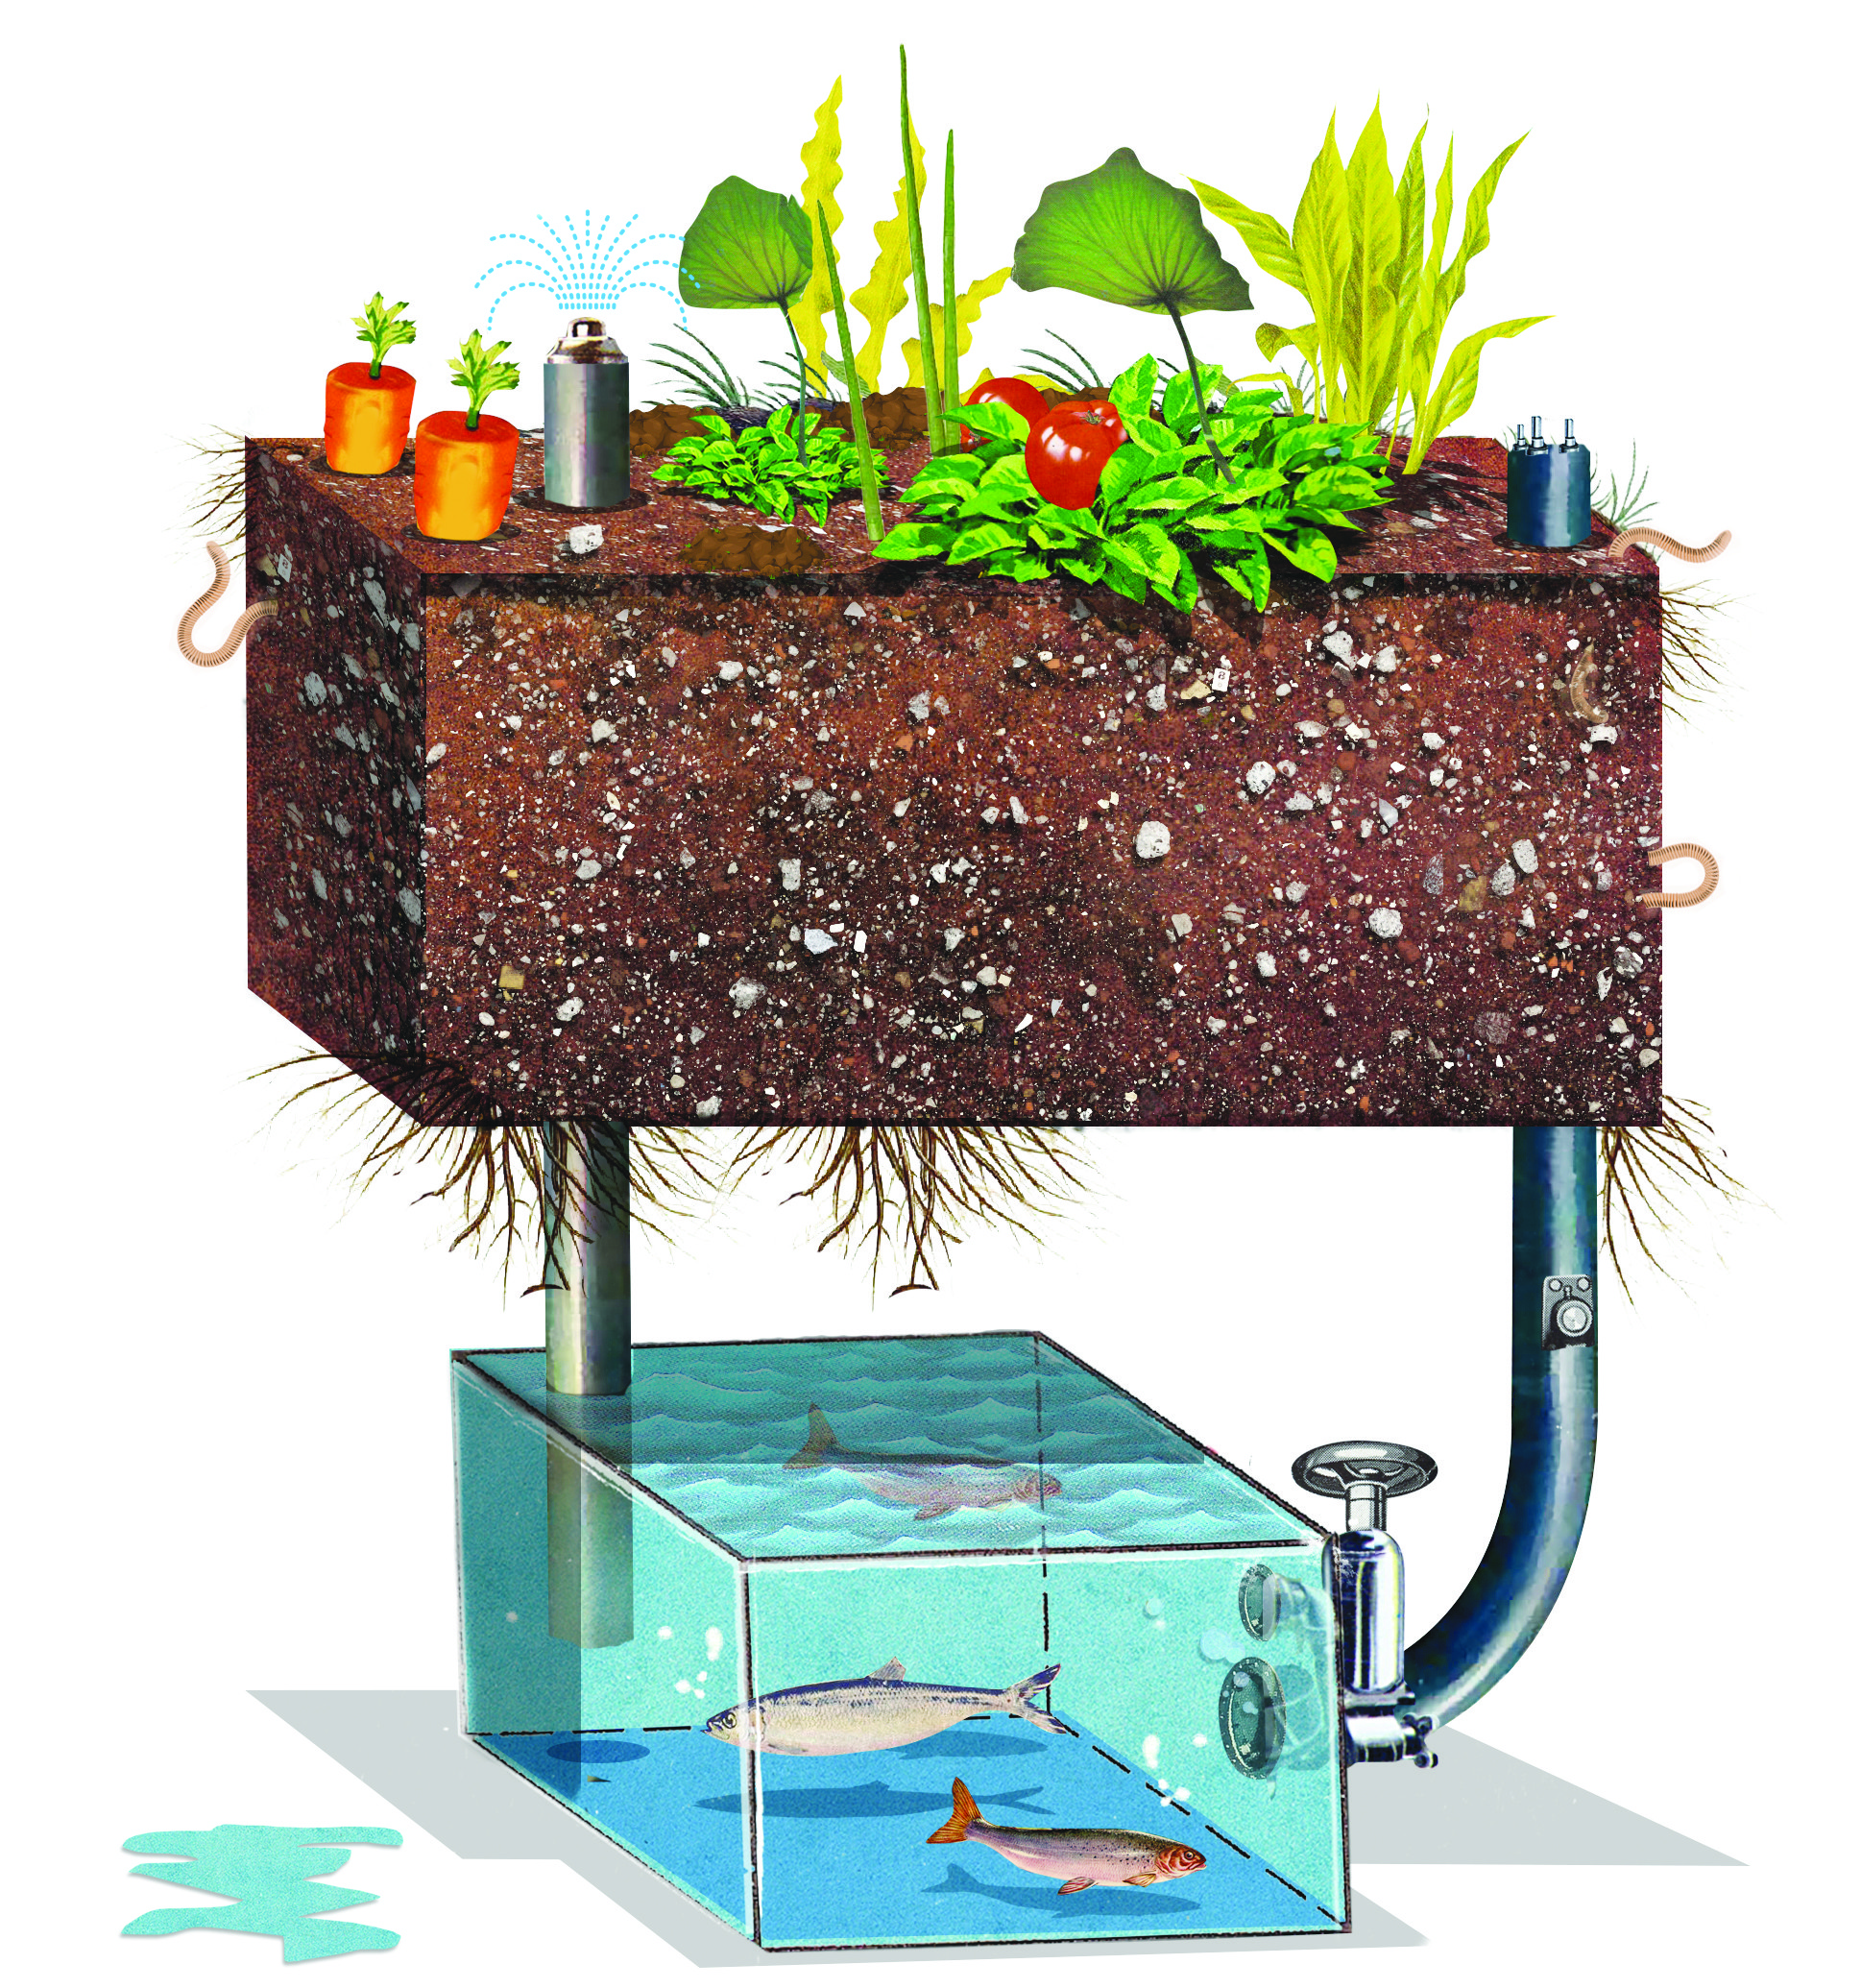 Build An Aquaponic Garden With Arduino Gardening Make Building A Backup Battery For Your Just Takes Little Bit Of